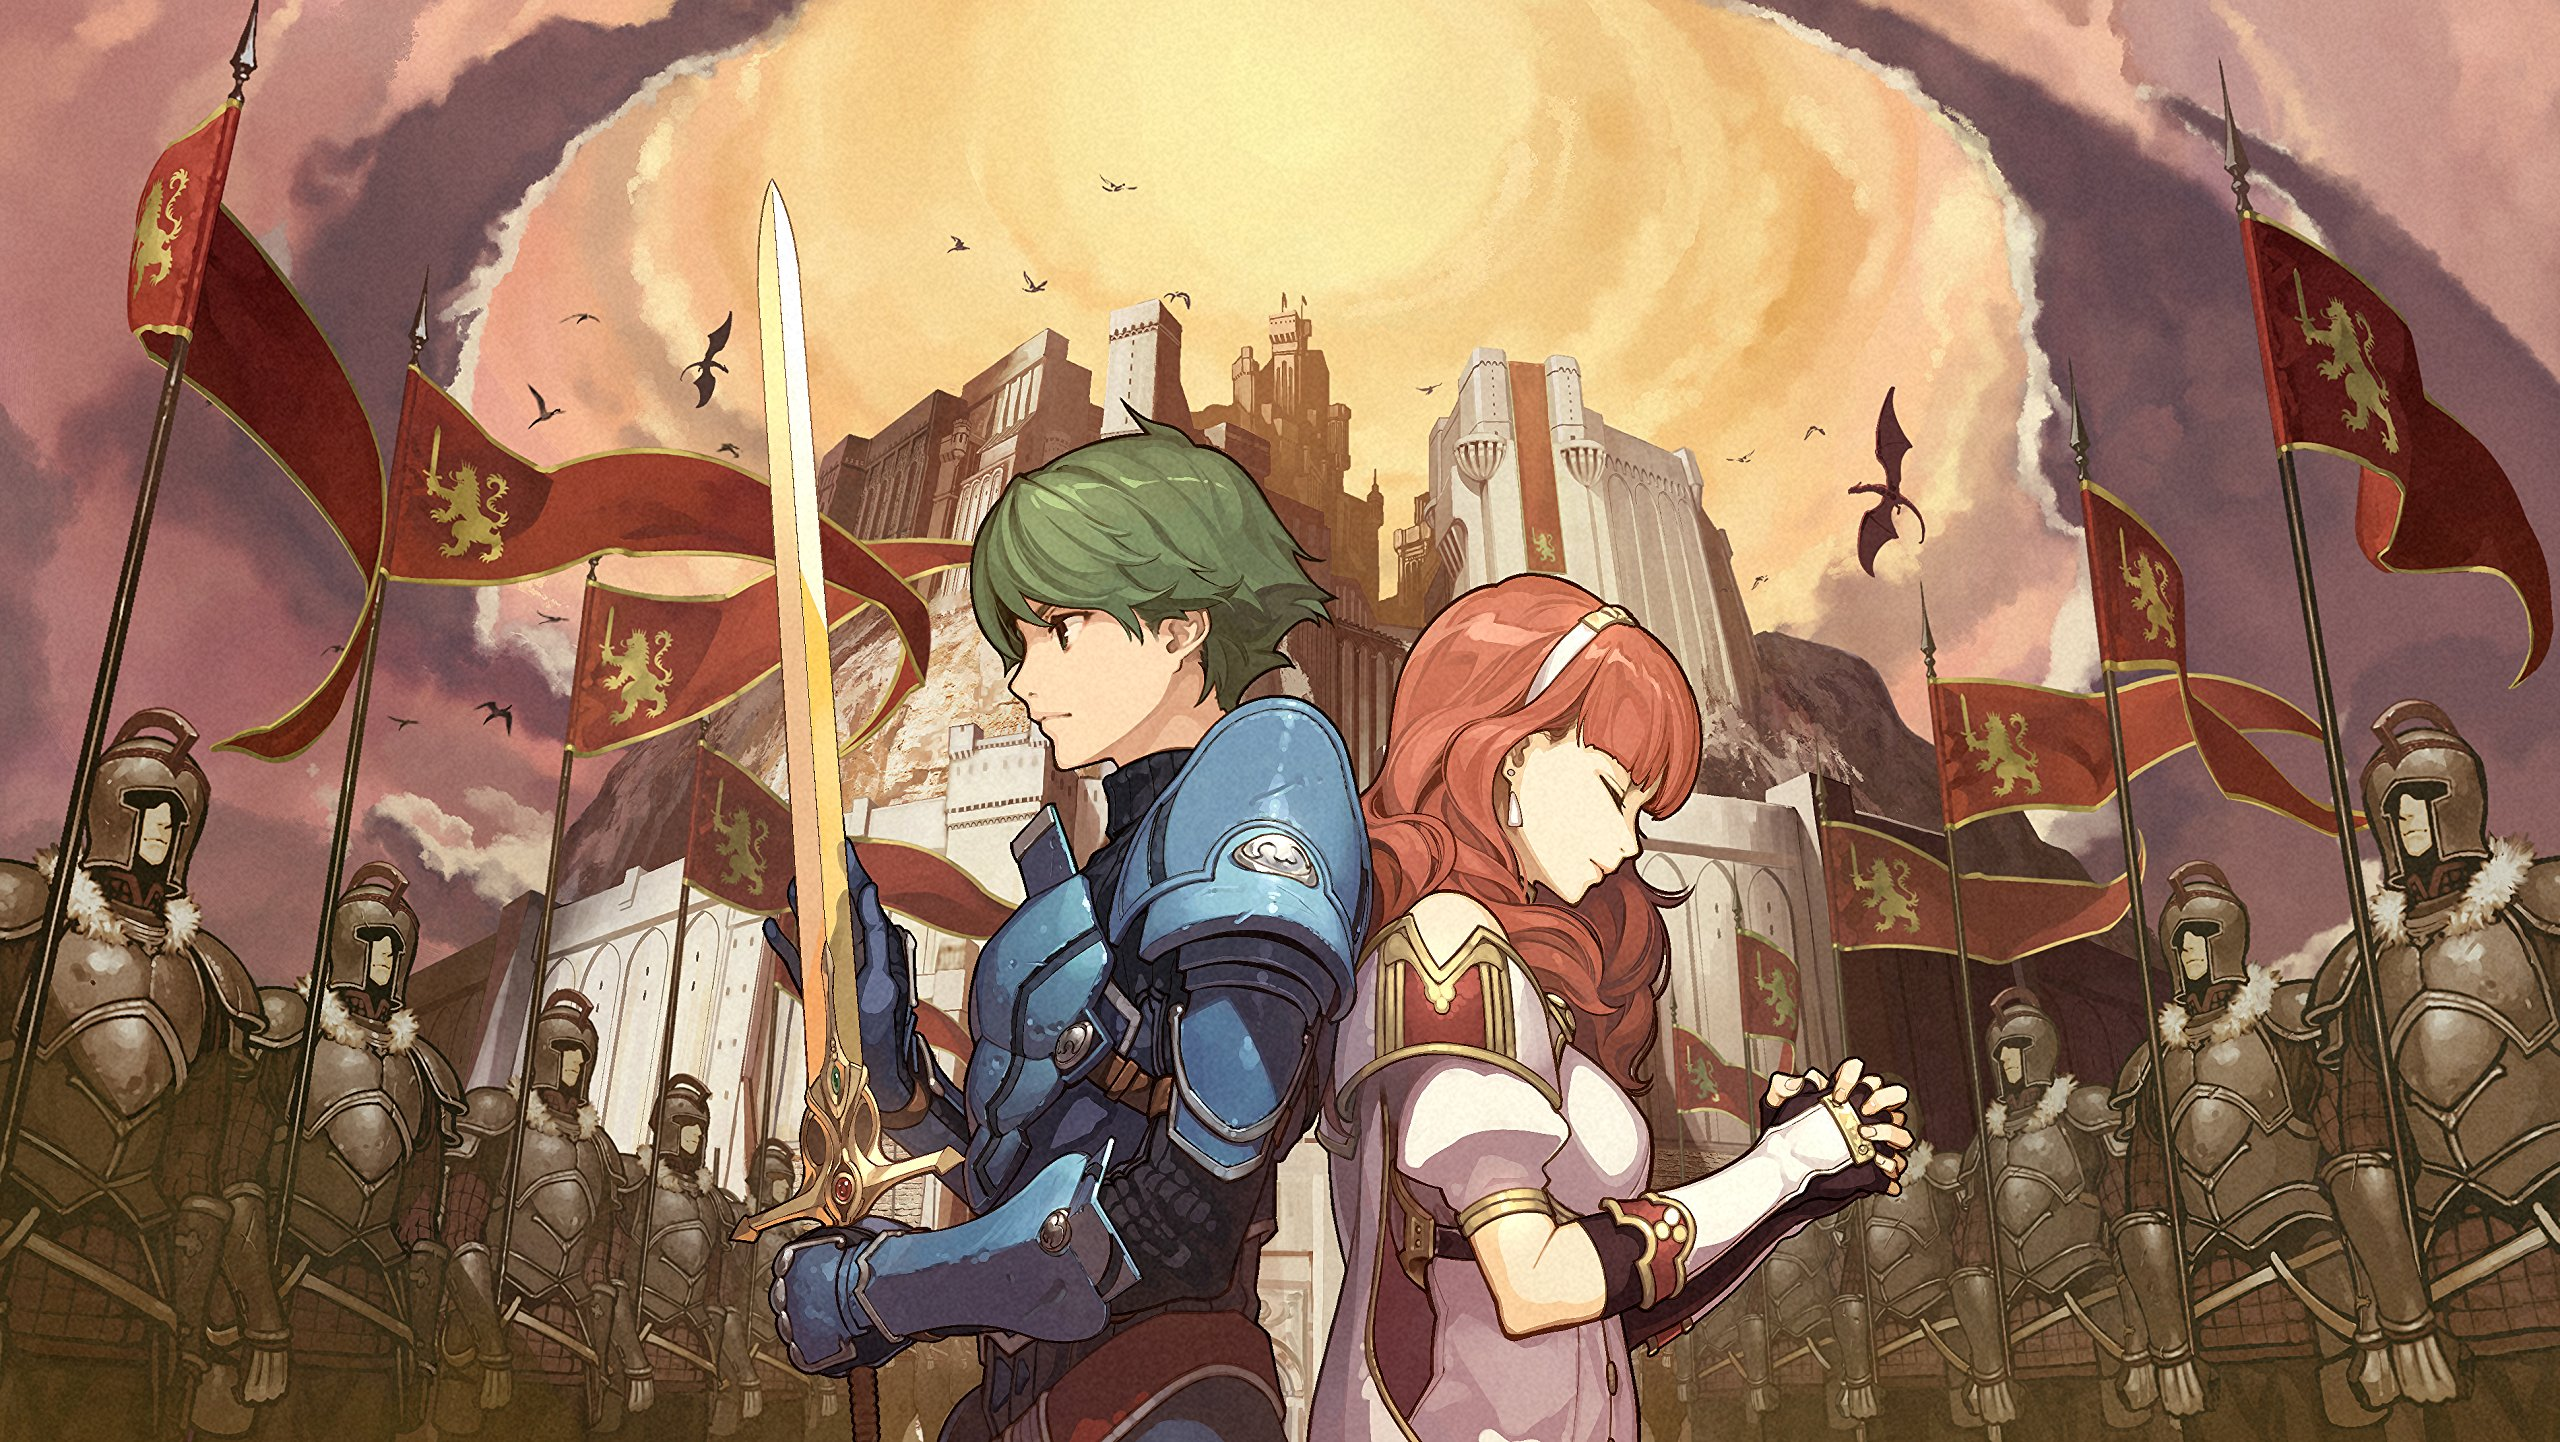 25 Fire Emblem Echoes Shadows Of Valentia Hd Wallpapers